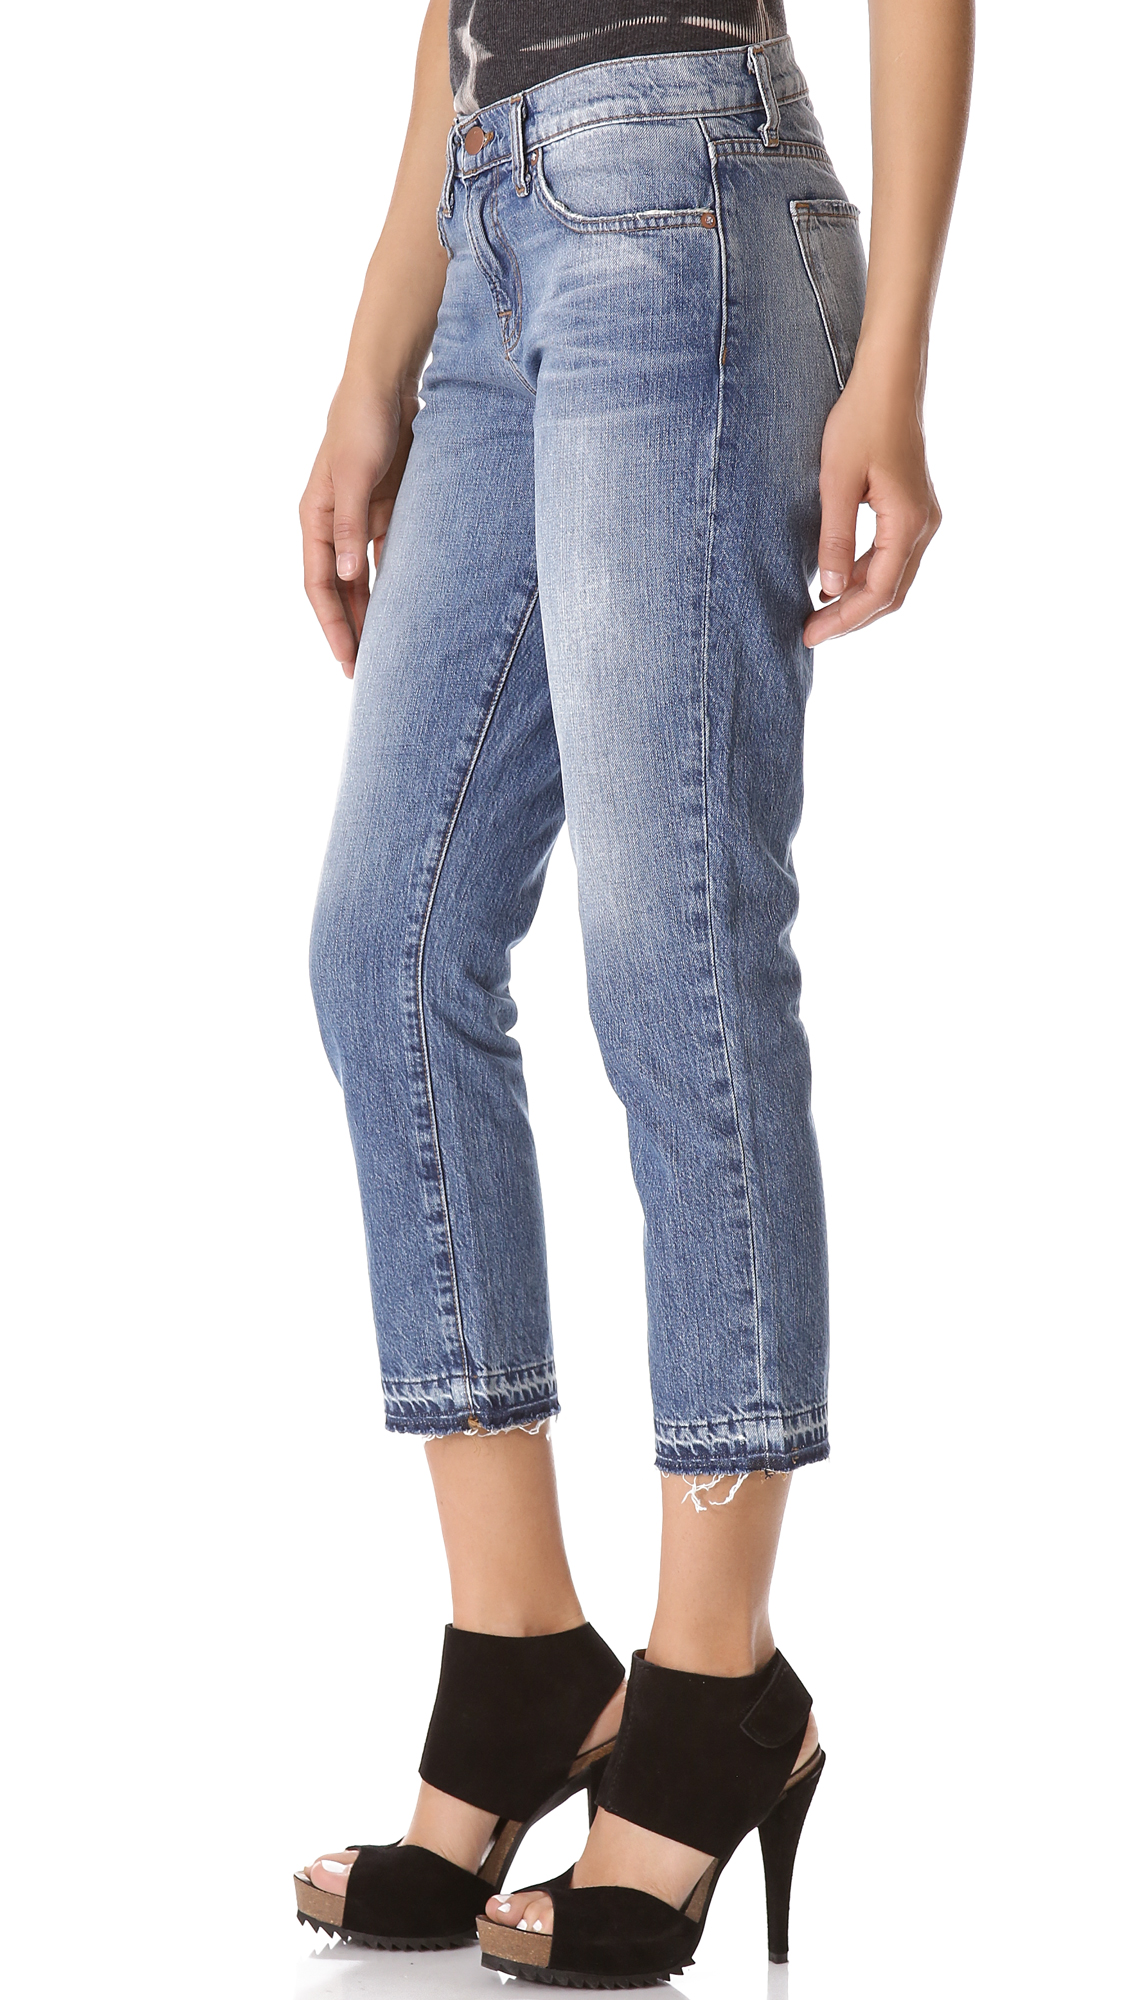 There are as many types of jeans as there are women's silhouettes. Just find the fit that suits you best and choose your style. Rips, patches, embroidery, fraying or irregular hems.